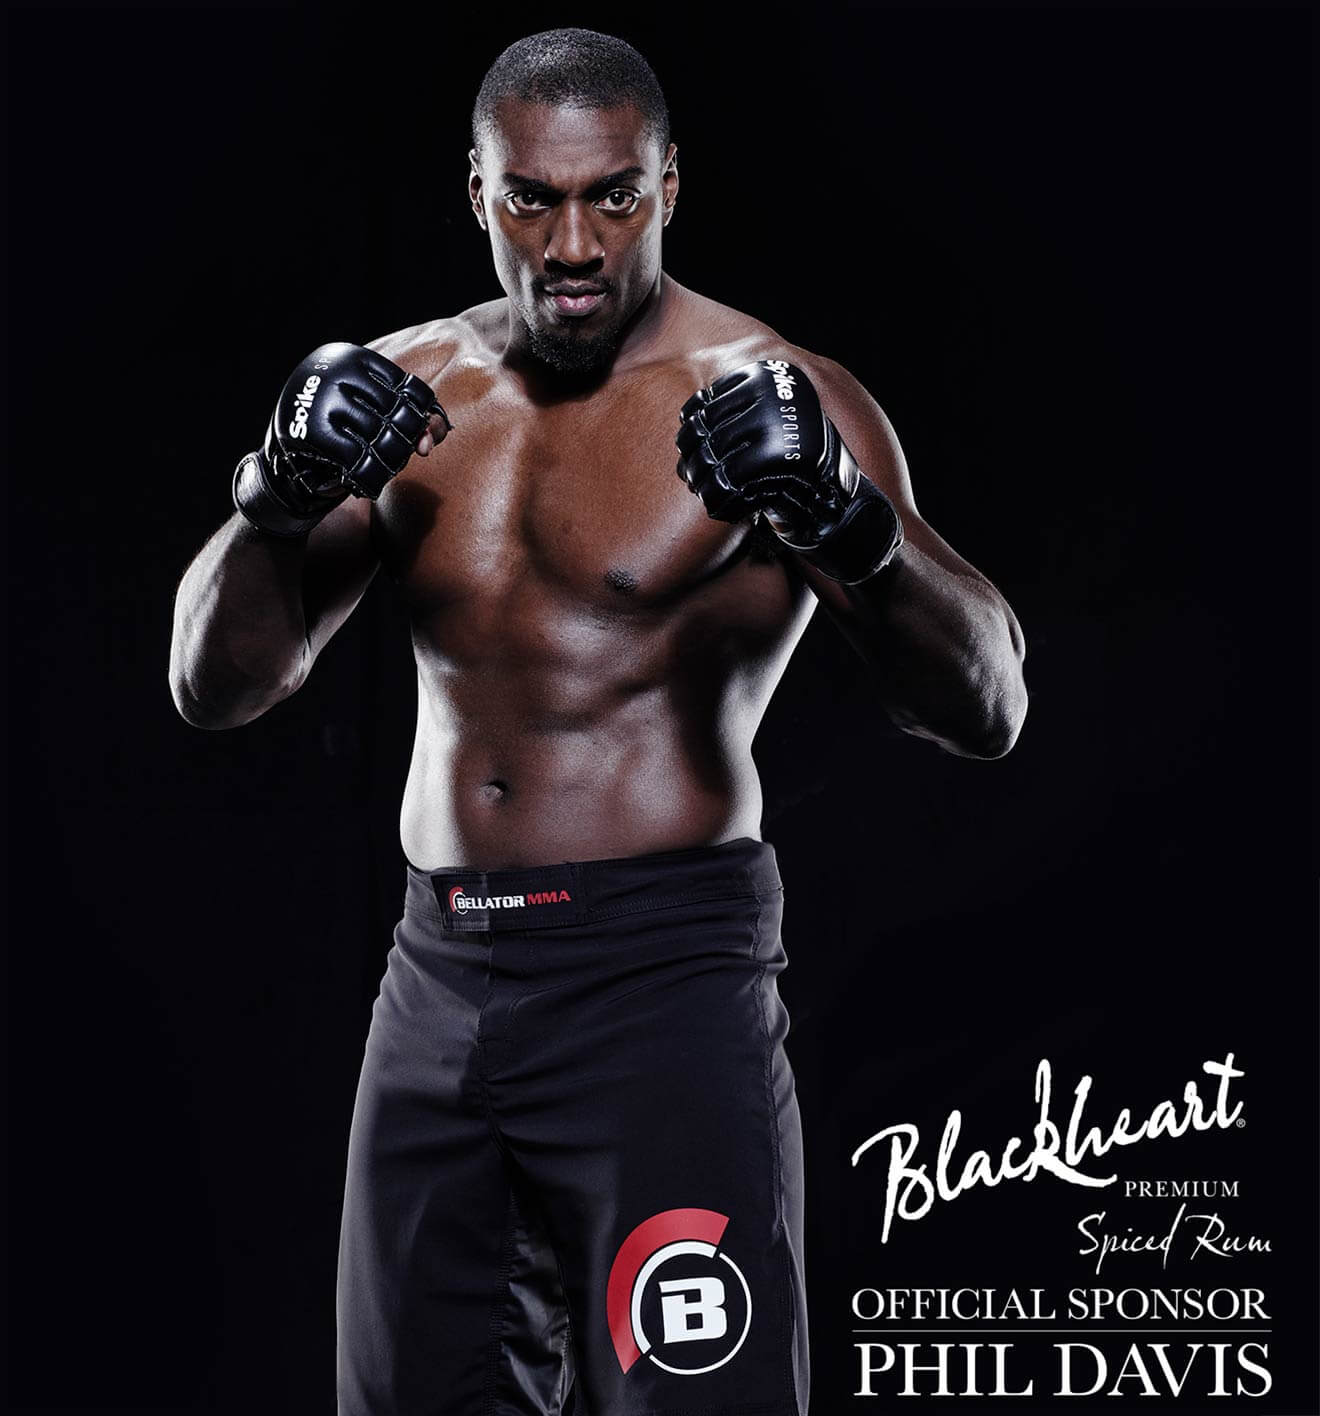 Phil Davis, MMA Champion Posing for Blackheart Spiced Rum